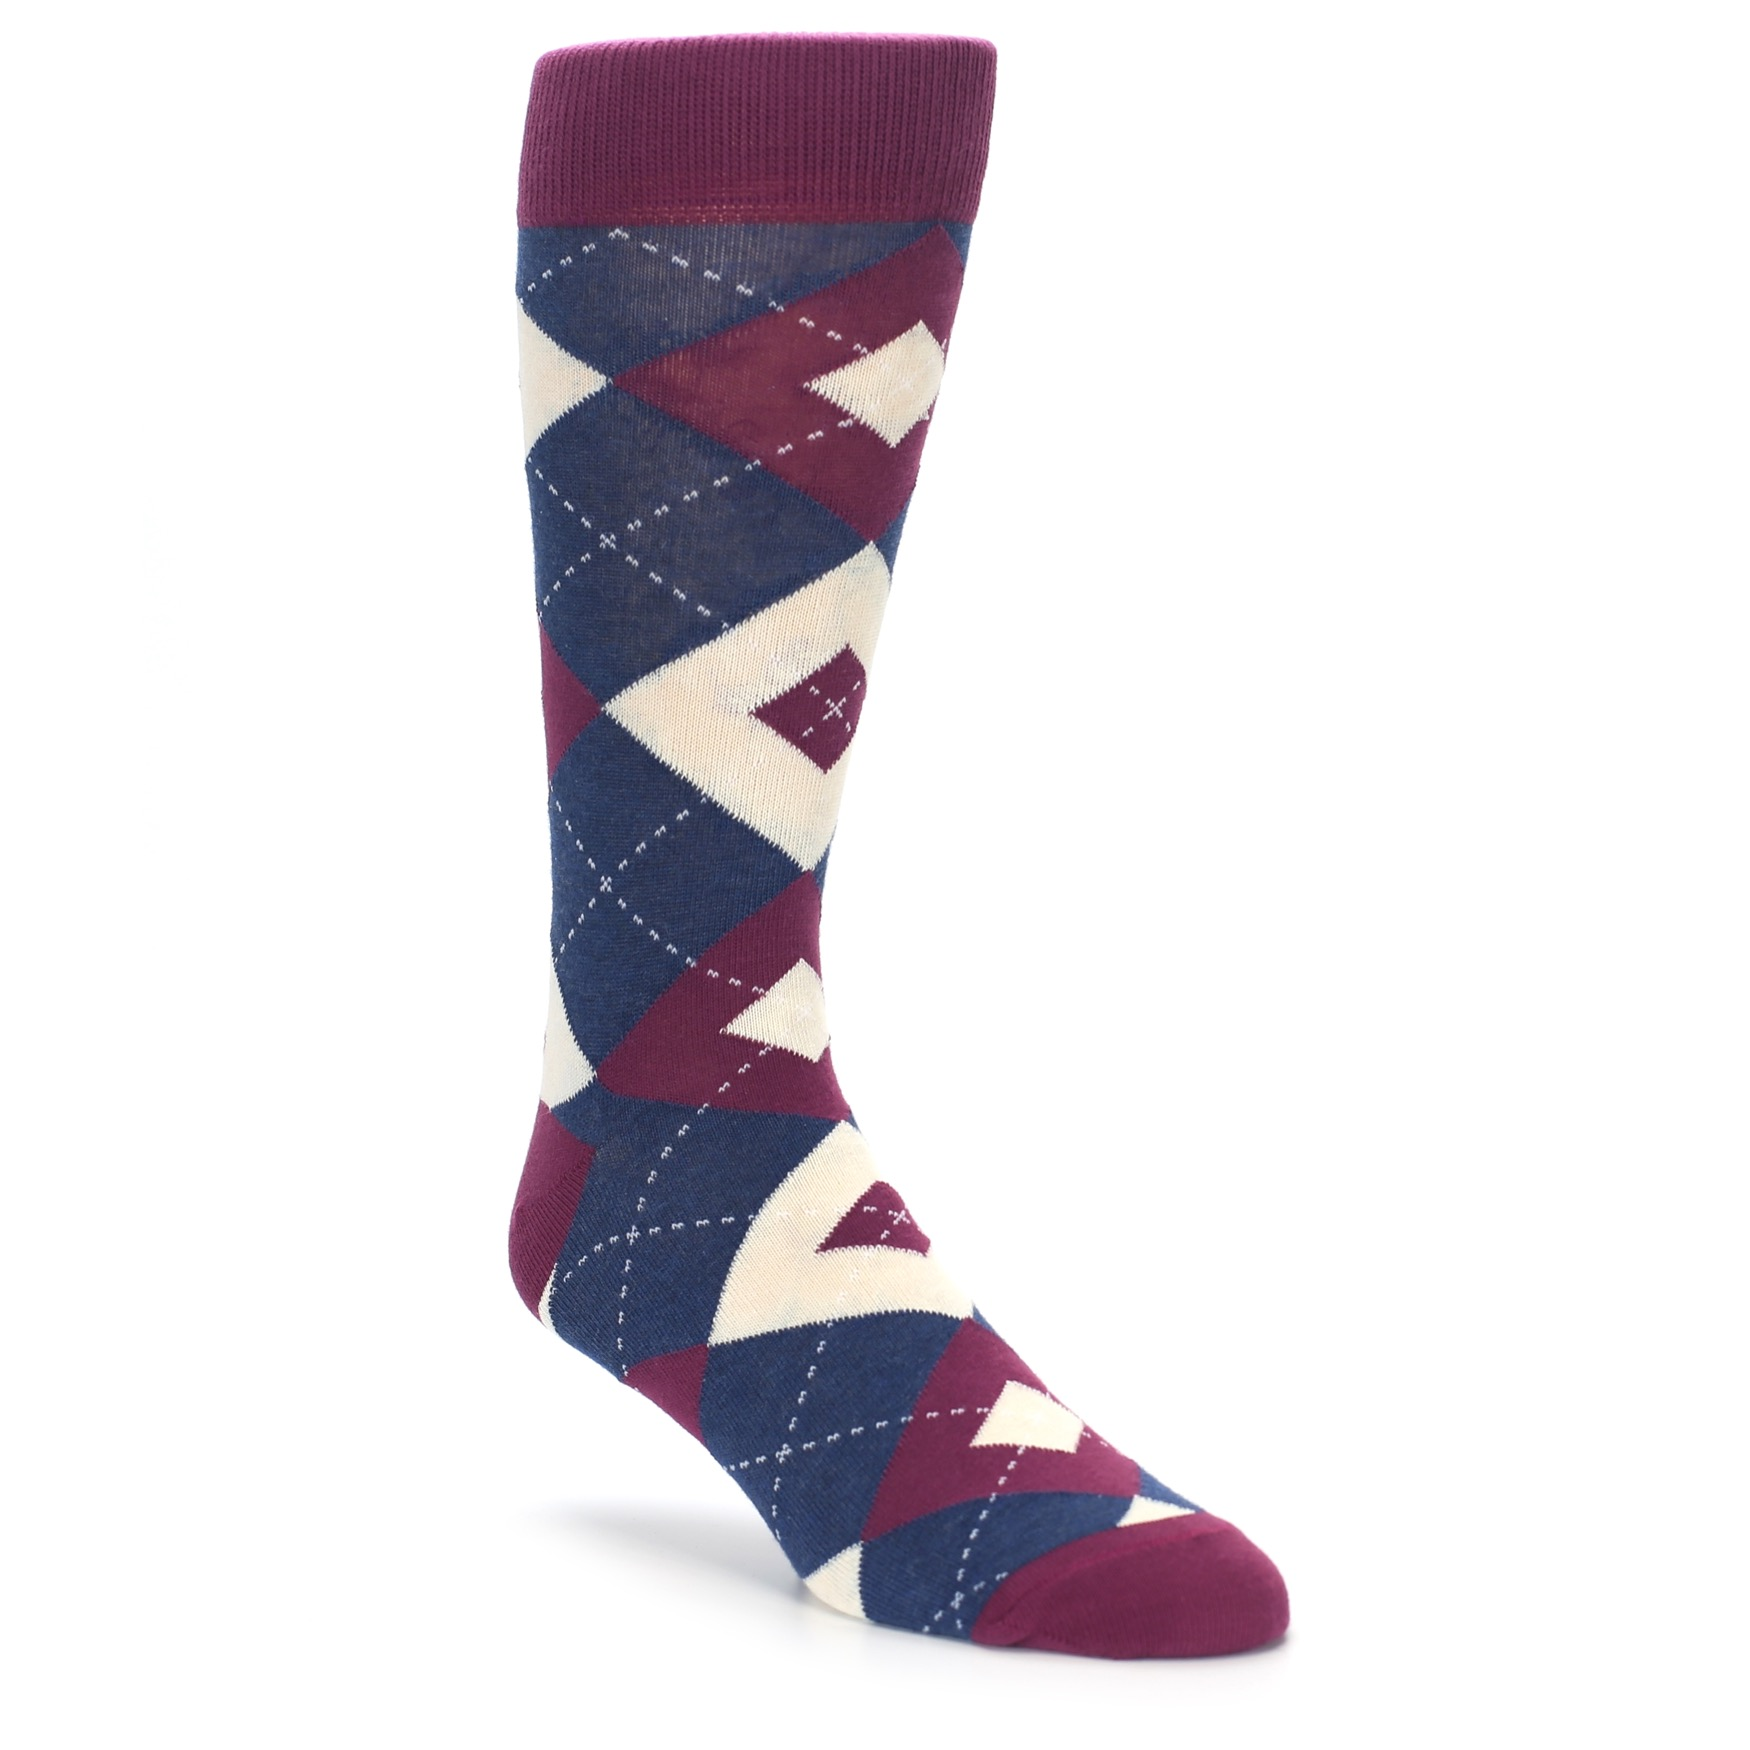 Sangria Argyle Wedding Socks For Groomsmen